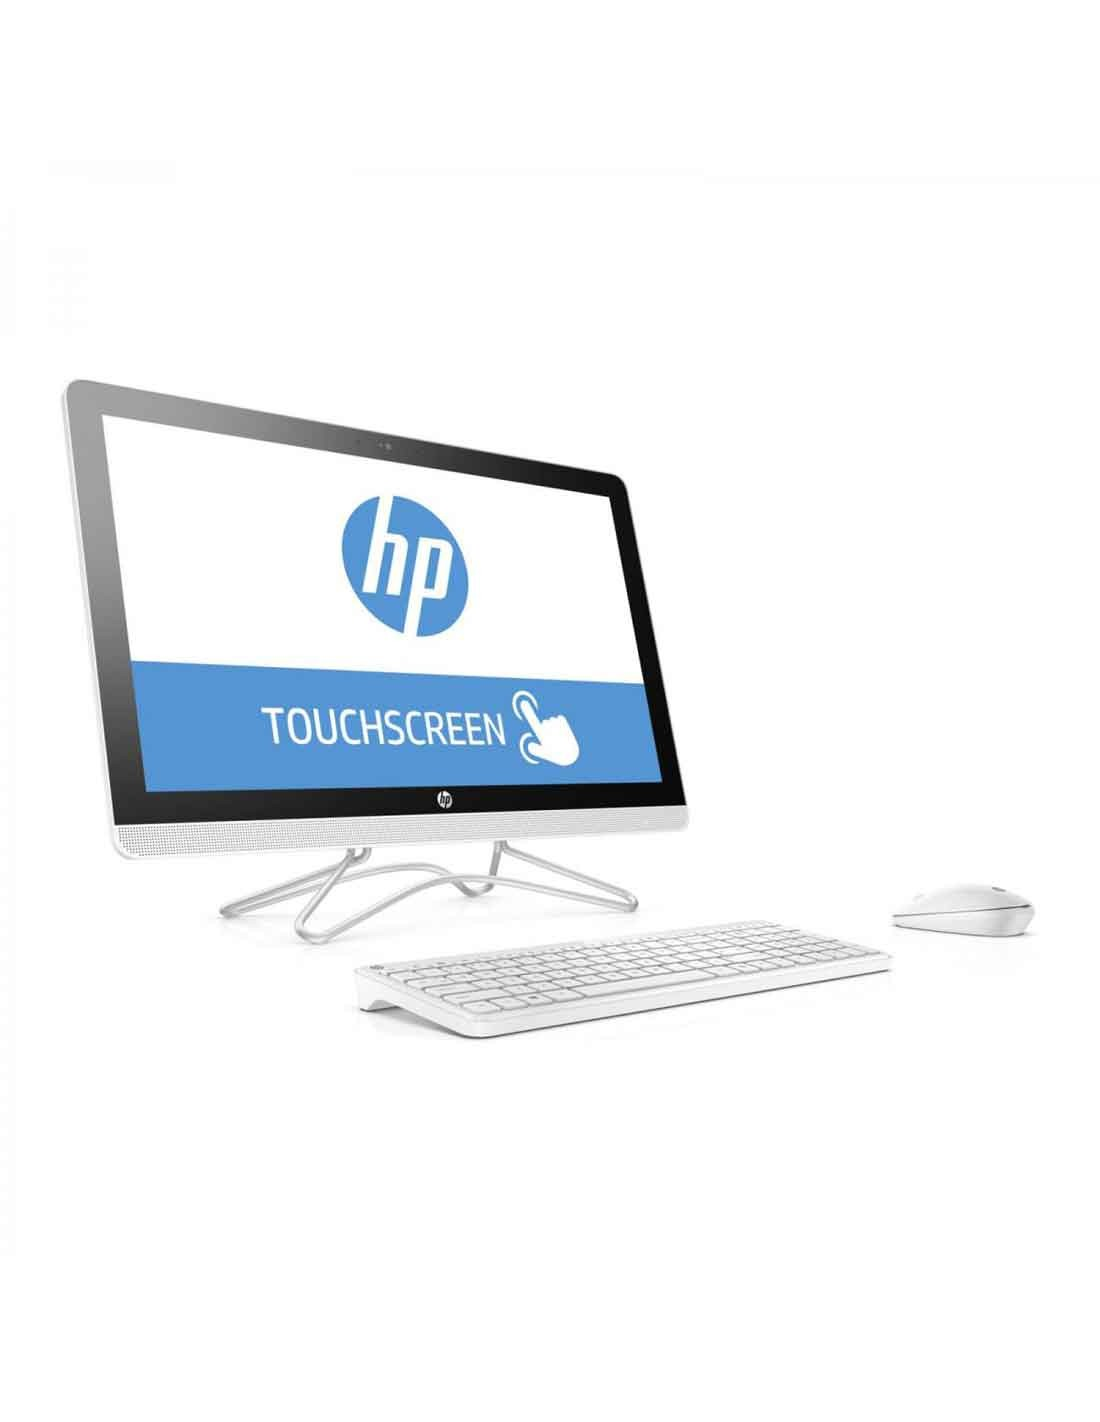 HP All-in-One 22-b312ne at the cheapest price and fast free delivery in Dubai